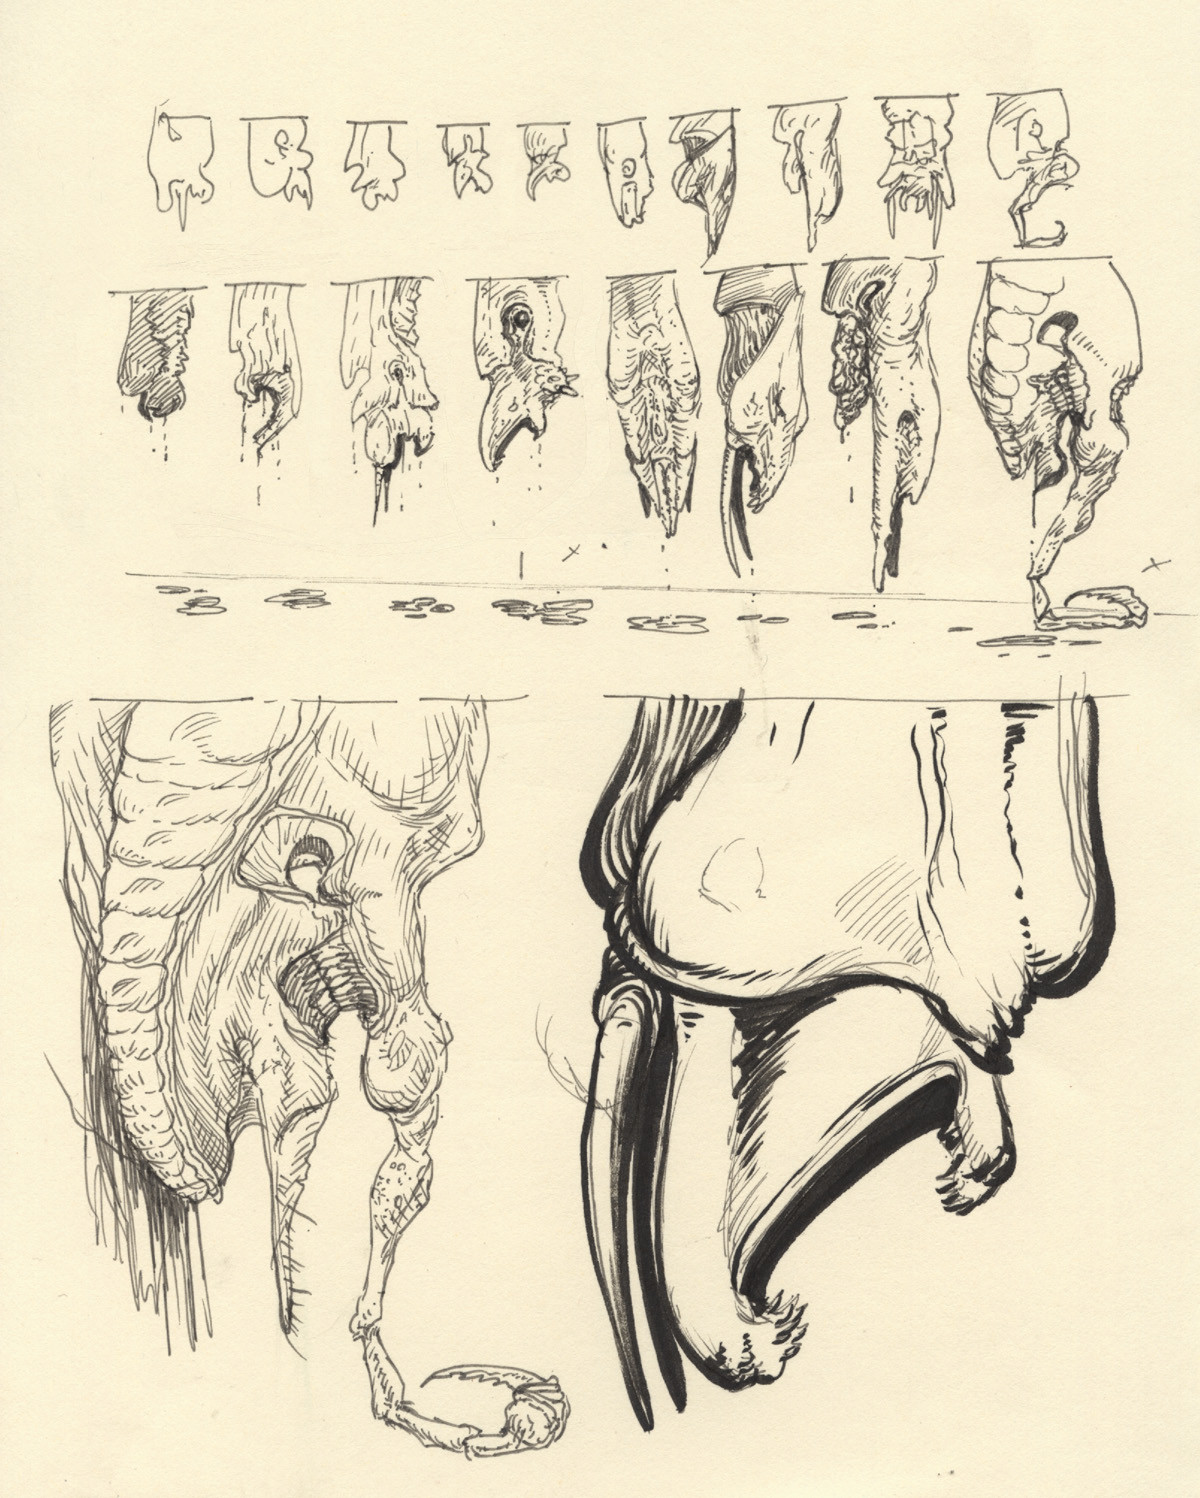 Early design in a more alien like direction